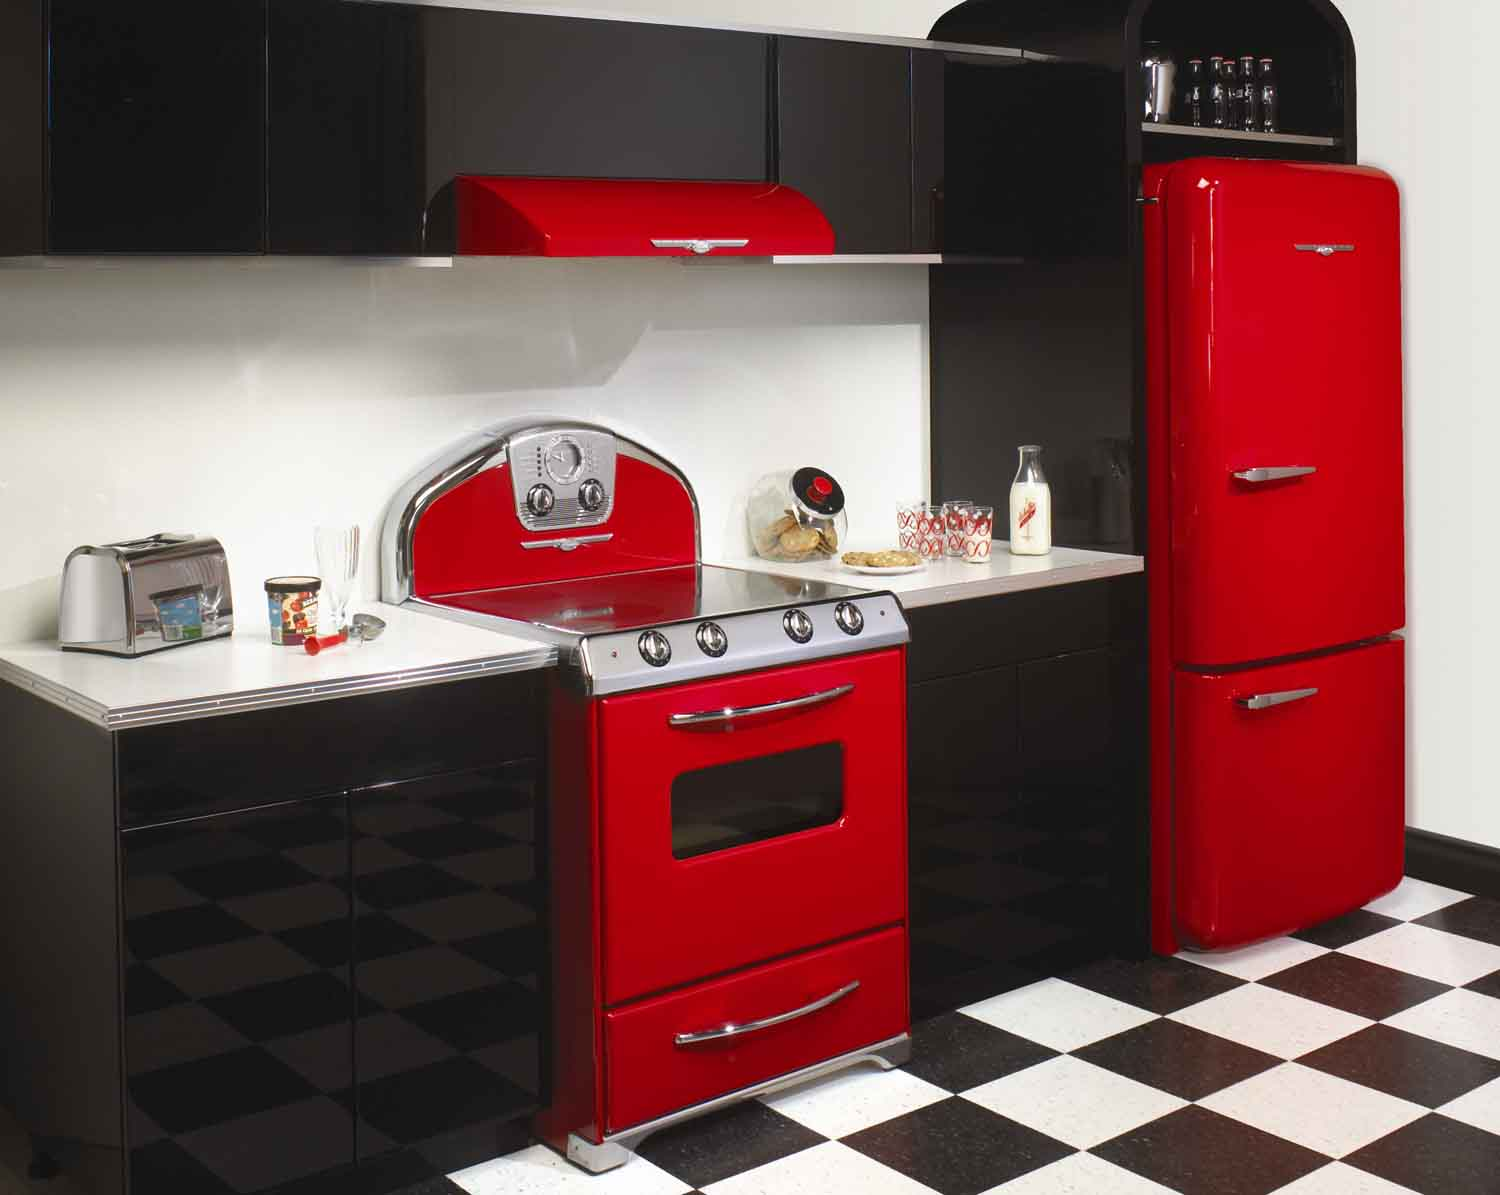 The daily tubber 1950 s kitchen - Black red and white kitchen designs ...